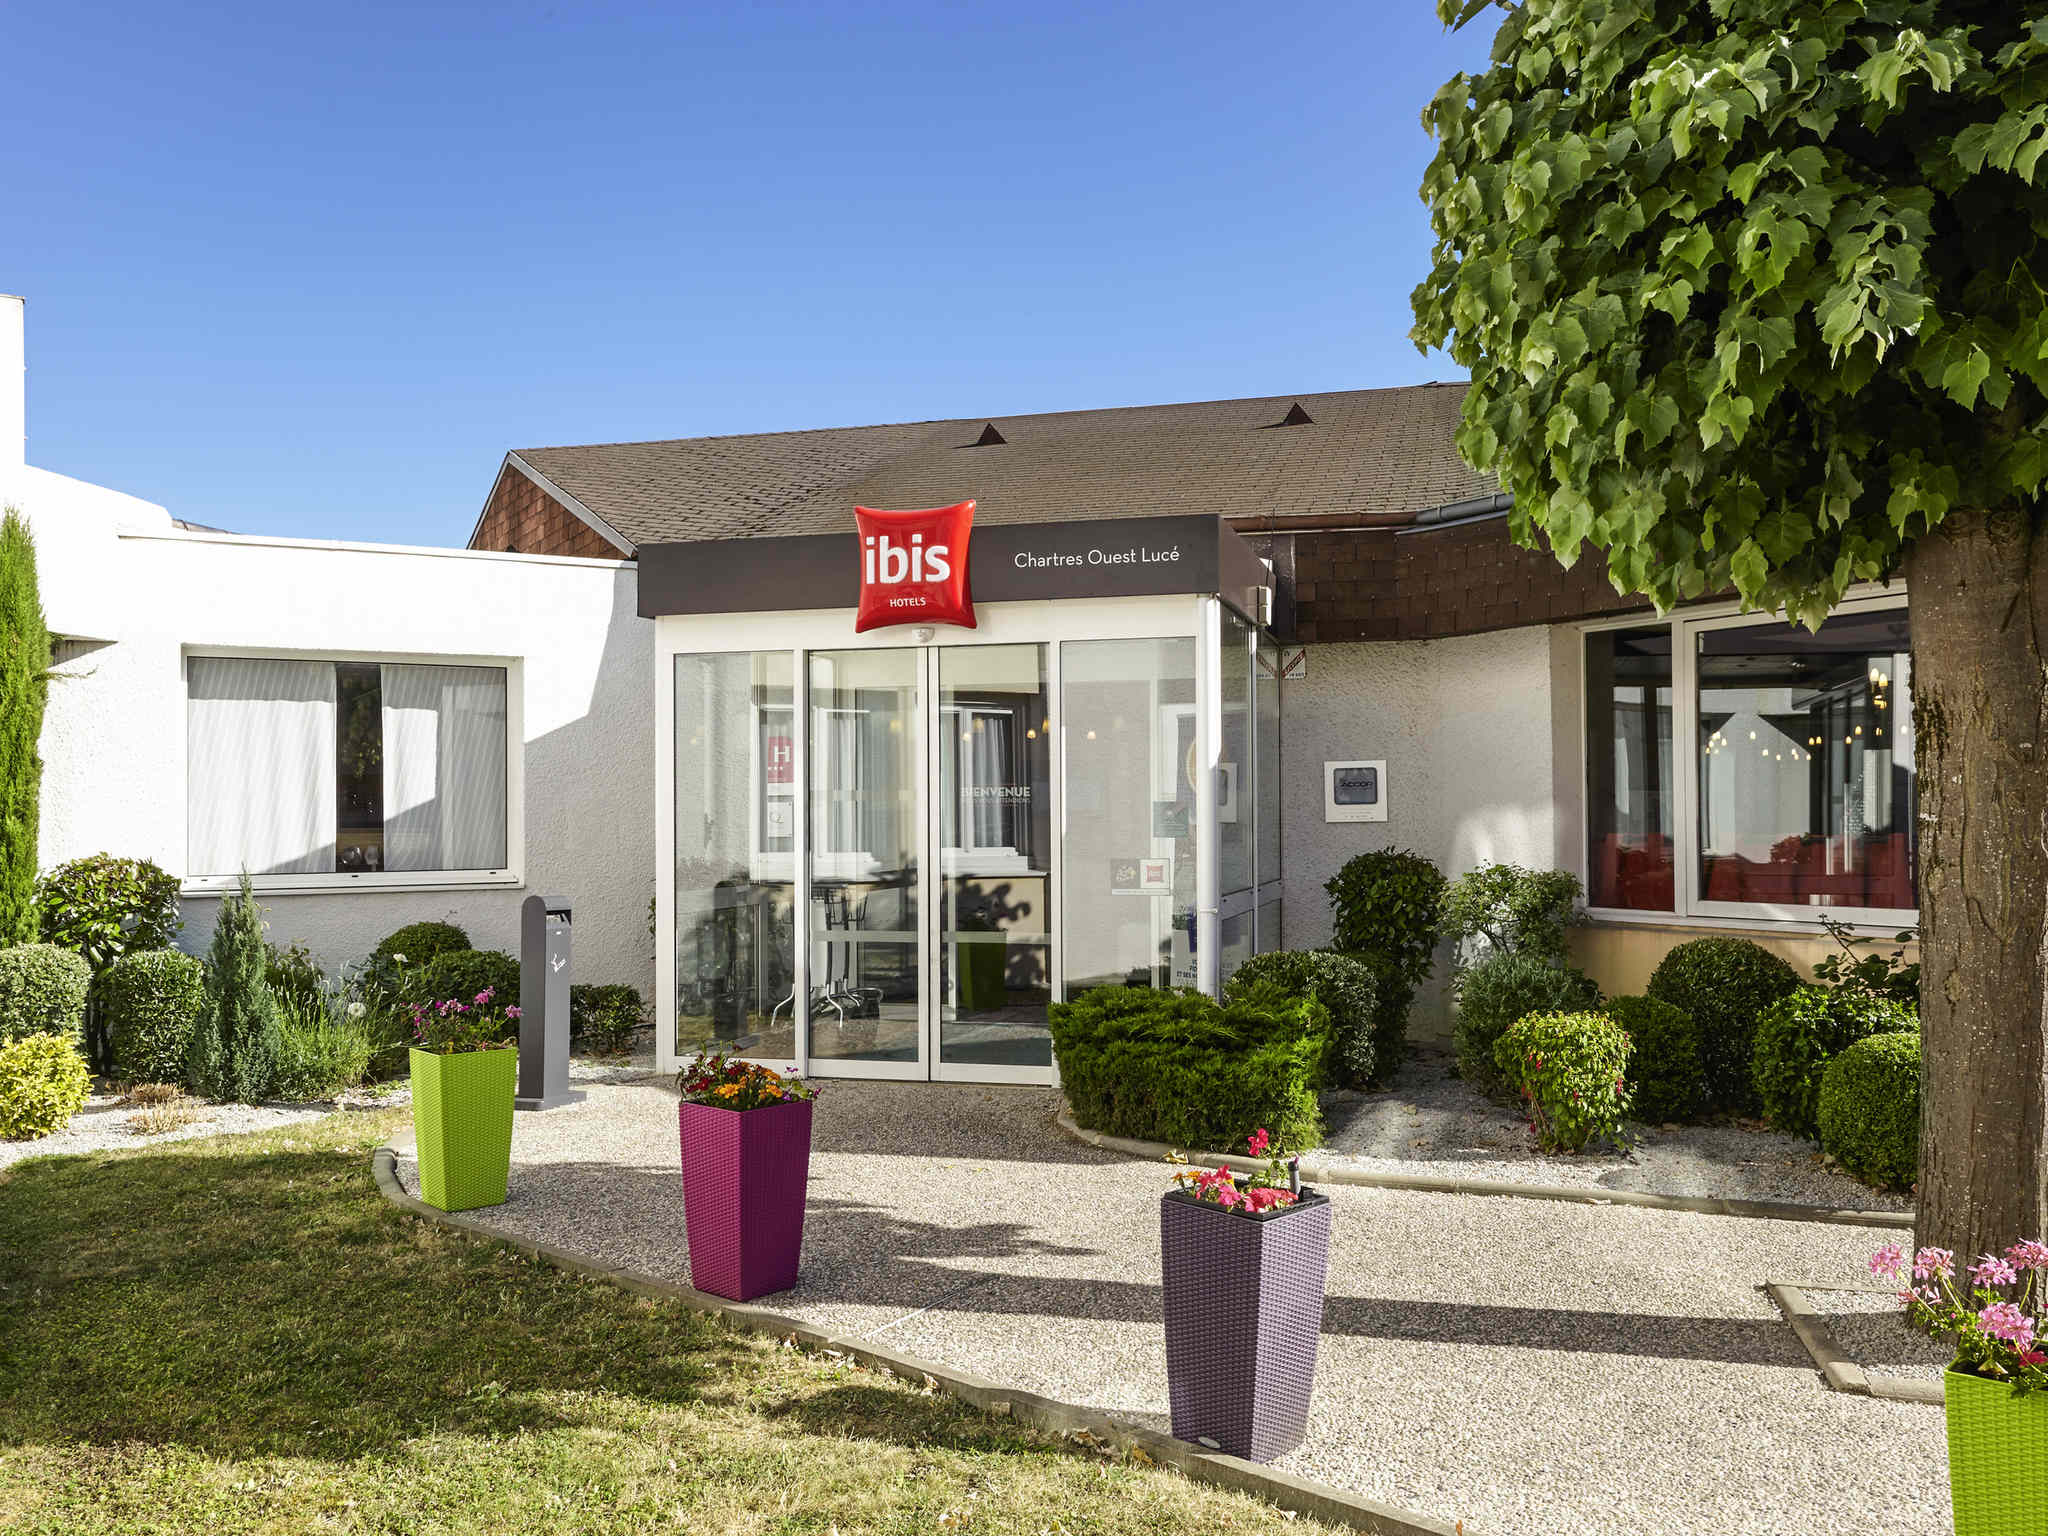 Hotel – ibis Chartres Ouest Luce